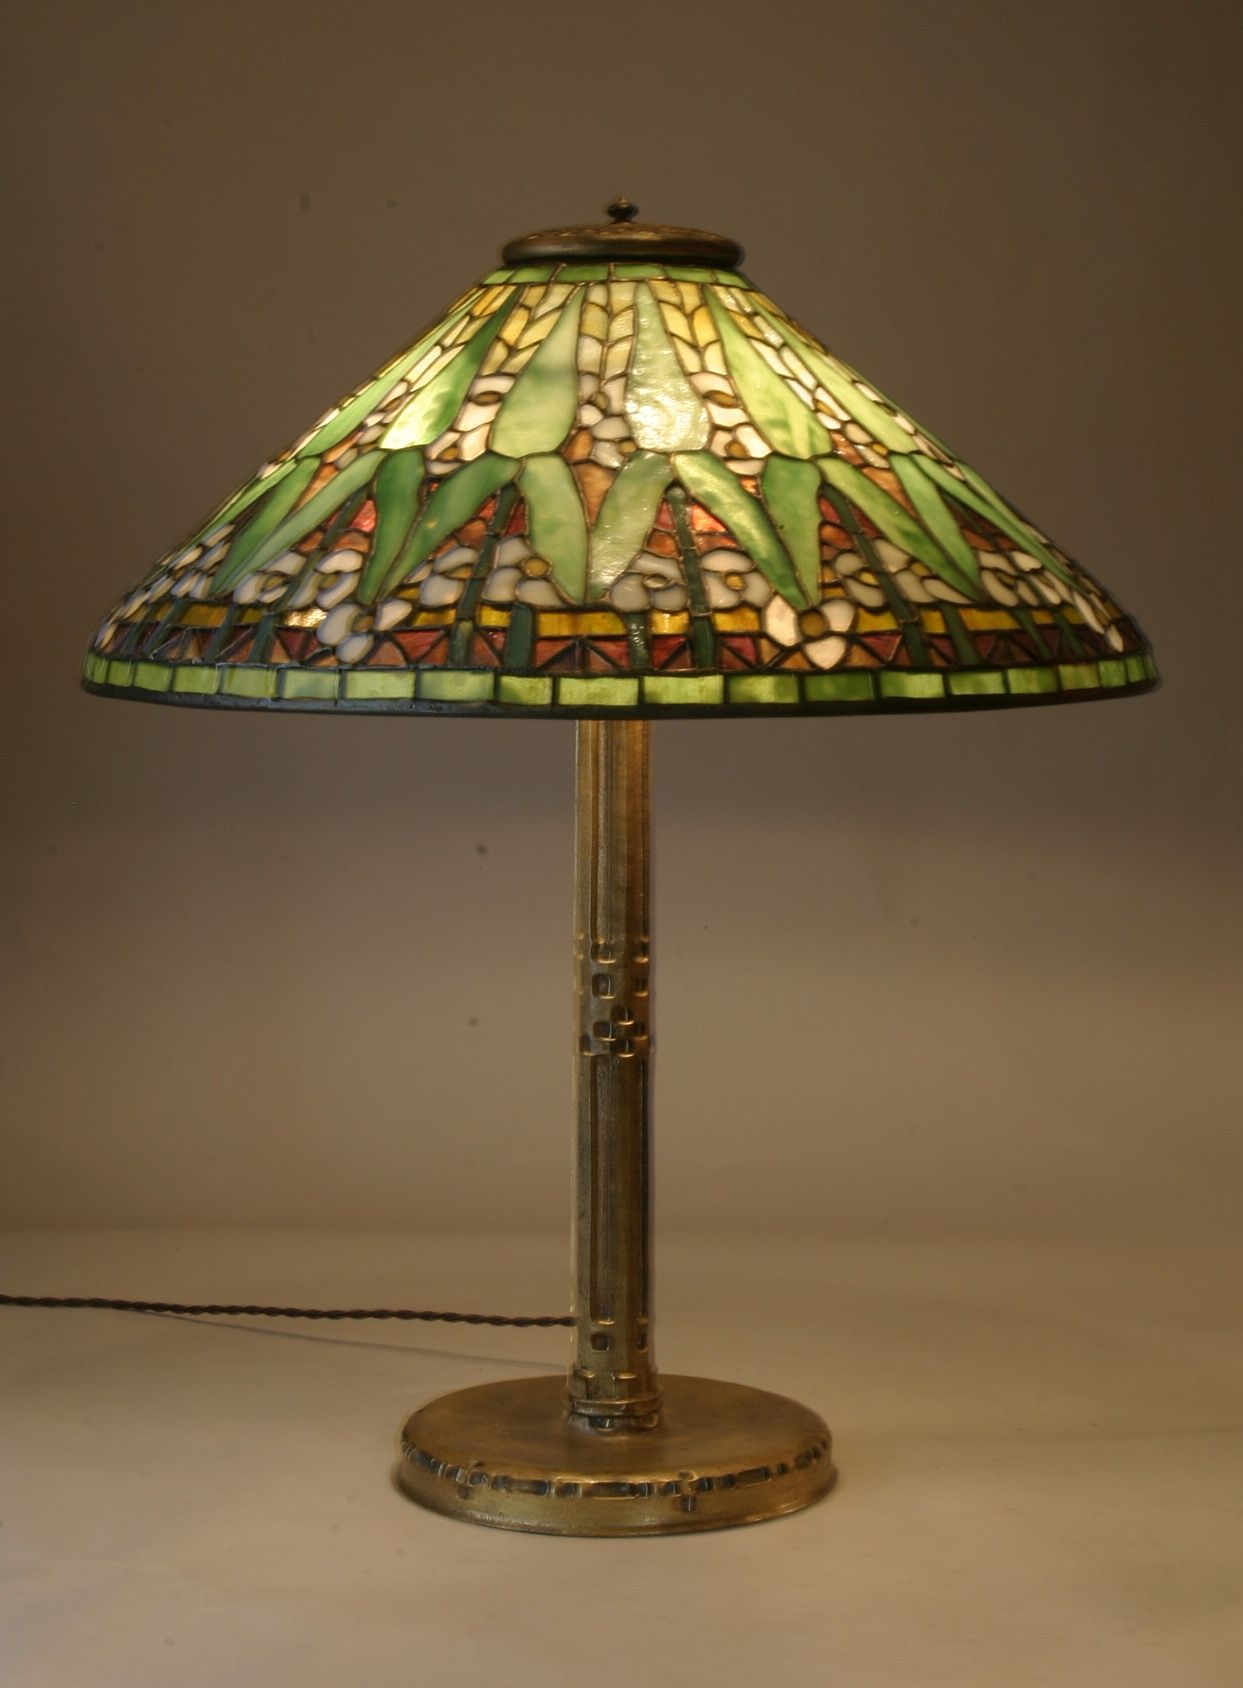 Antique tiffany table lamps - Antique Tiffany Lamps Arrowroot Art Nouveau Lamps And Chandeliers Antique Stained And Beveled